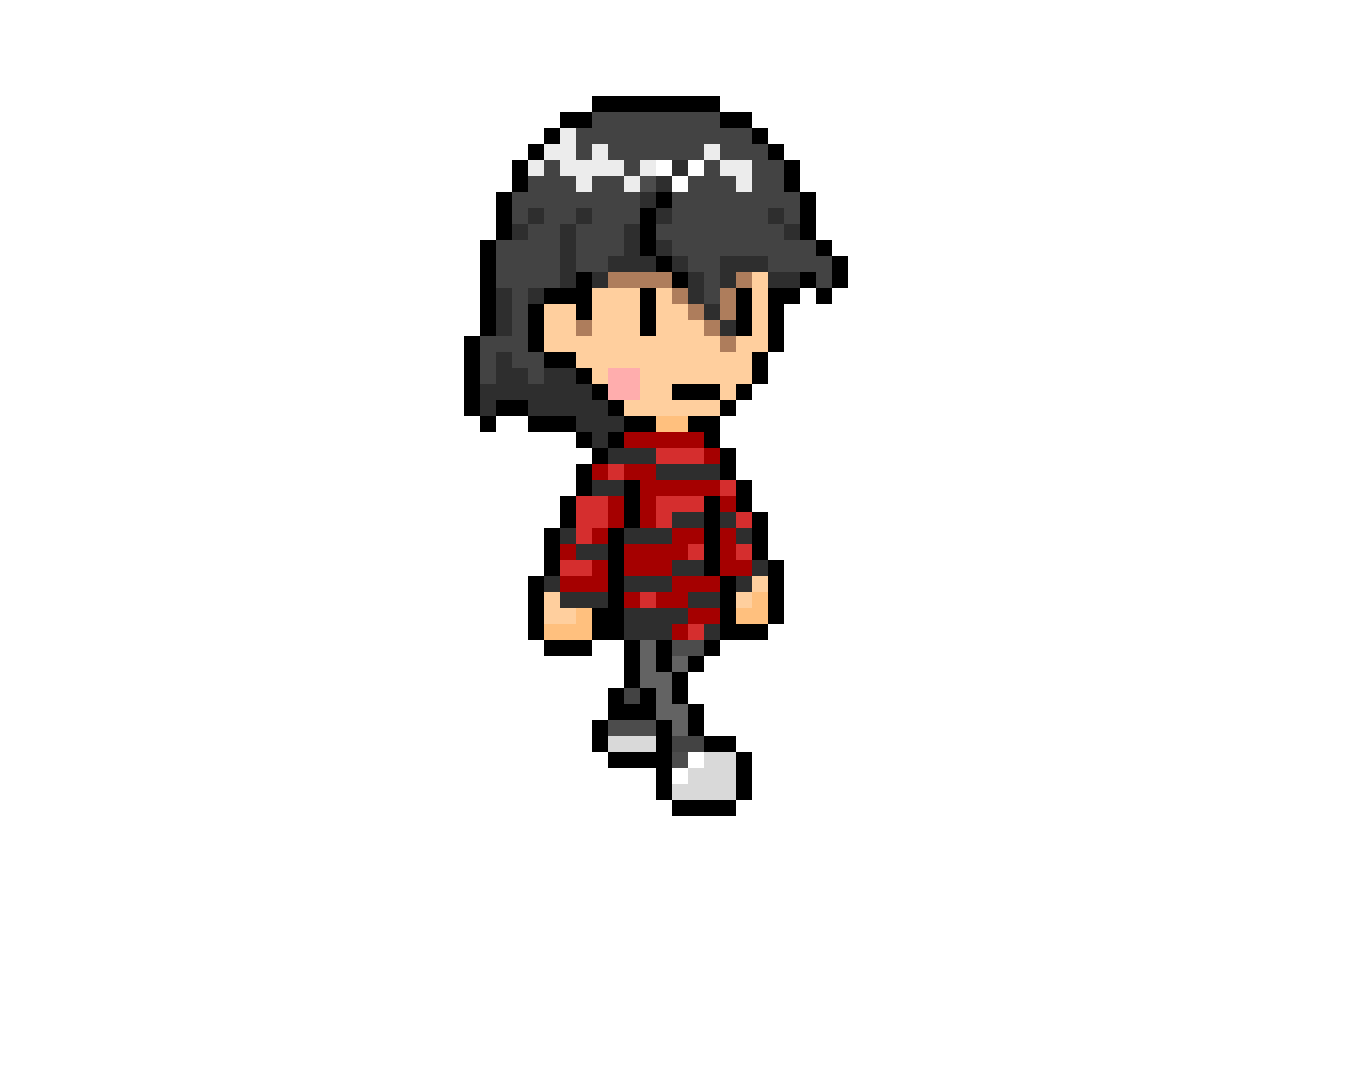 Charlie from the Oddventure (Upcoming Undertale and Earthbound inspired JRPG for Switch in 2022)